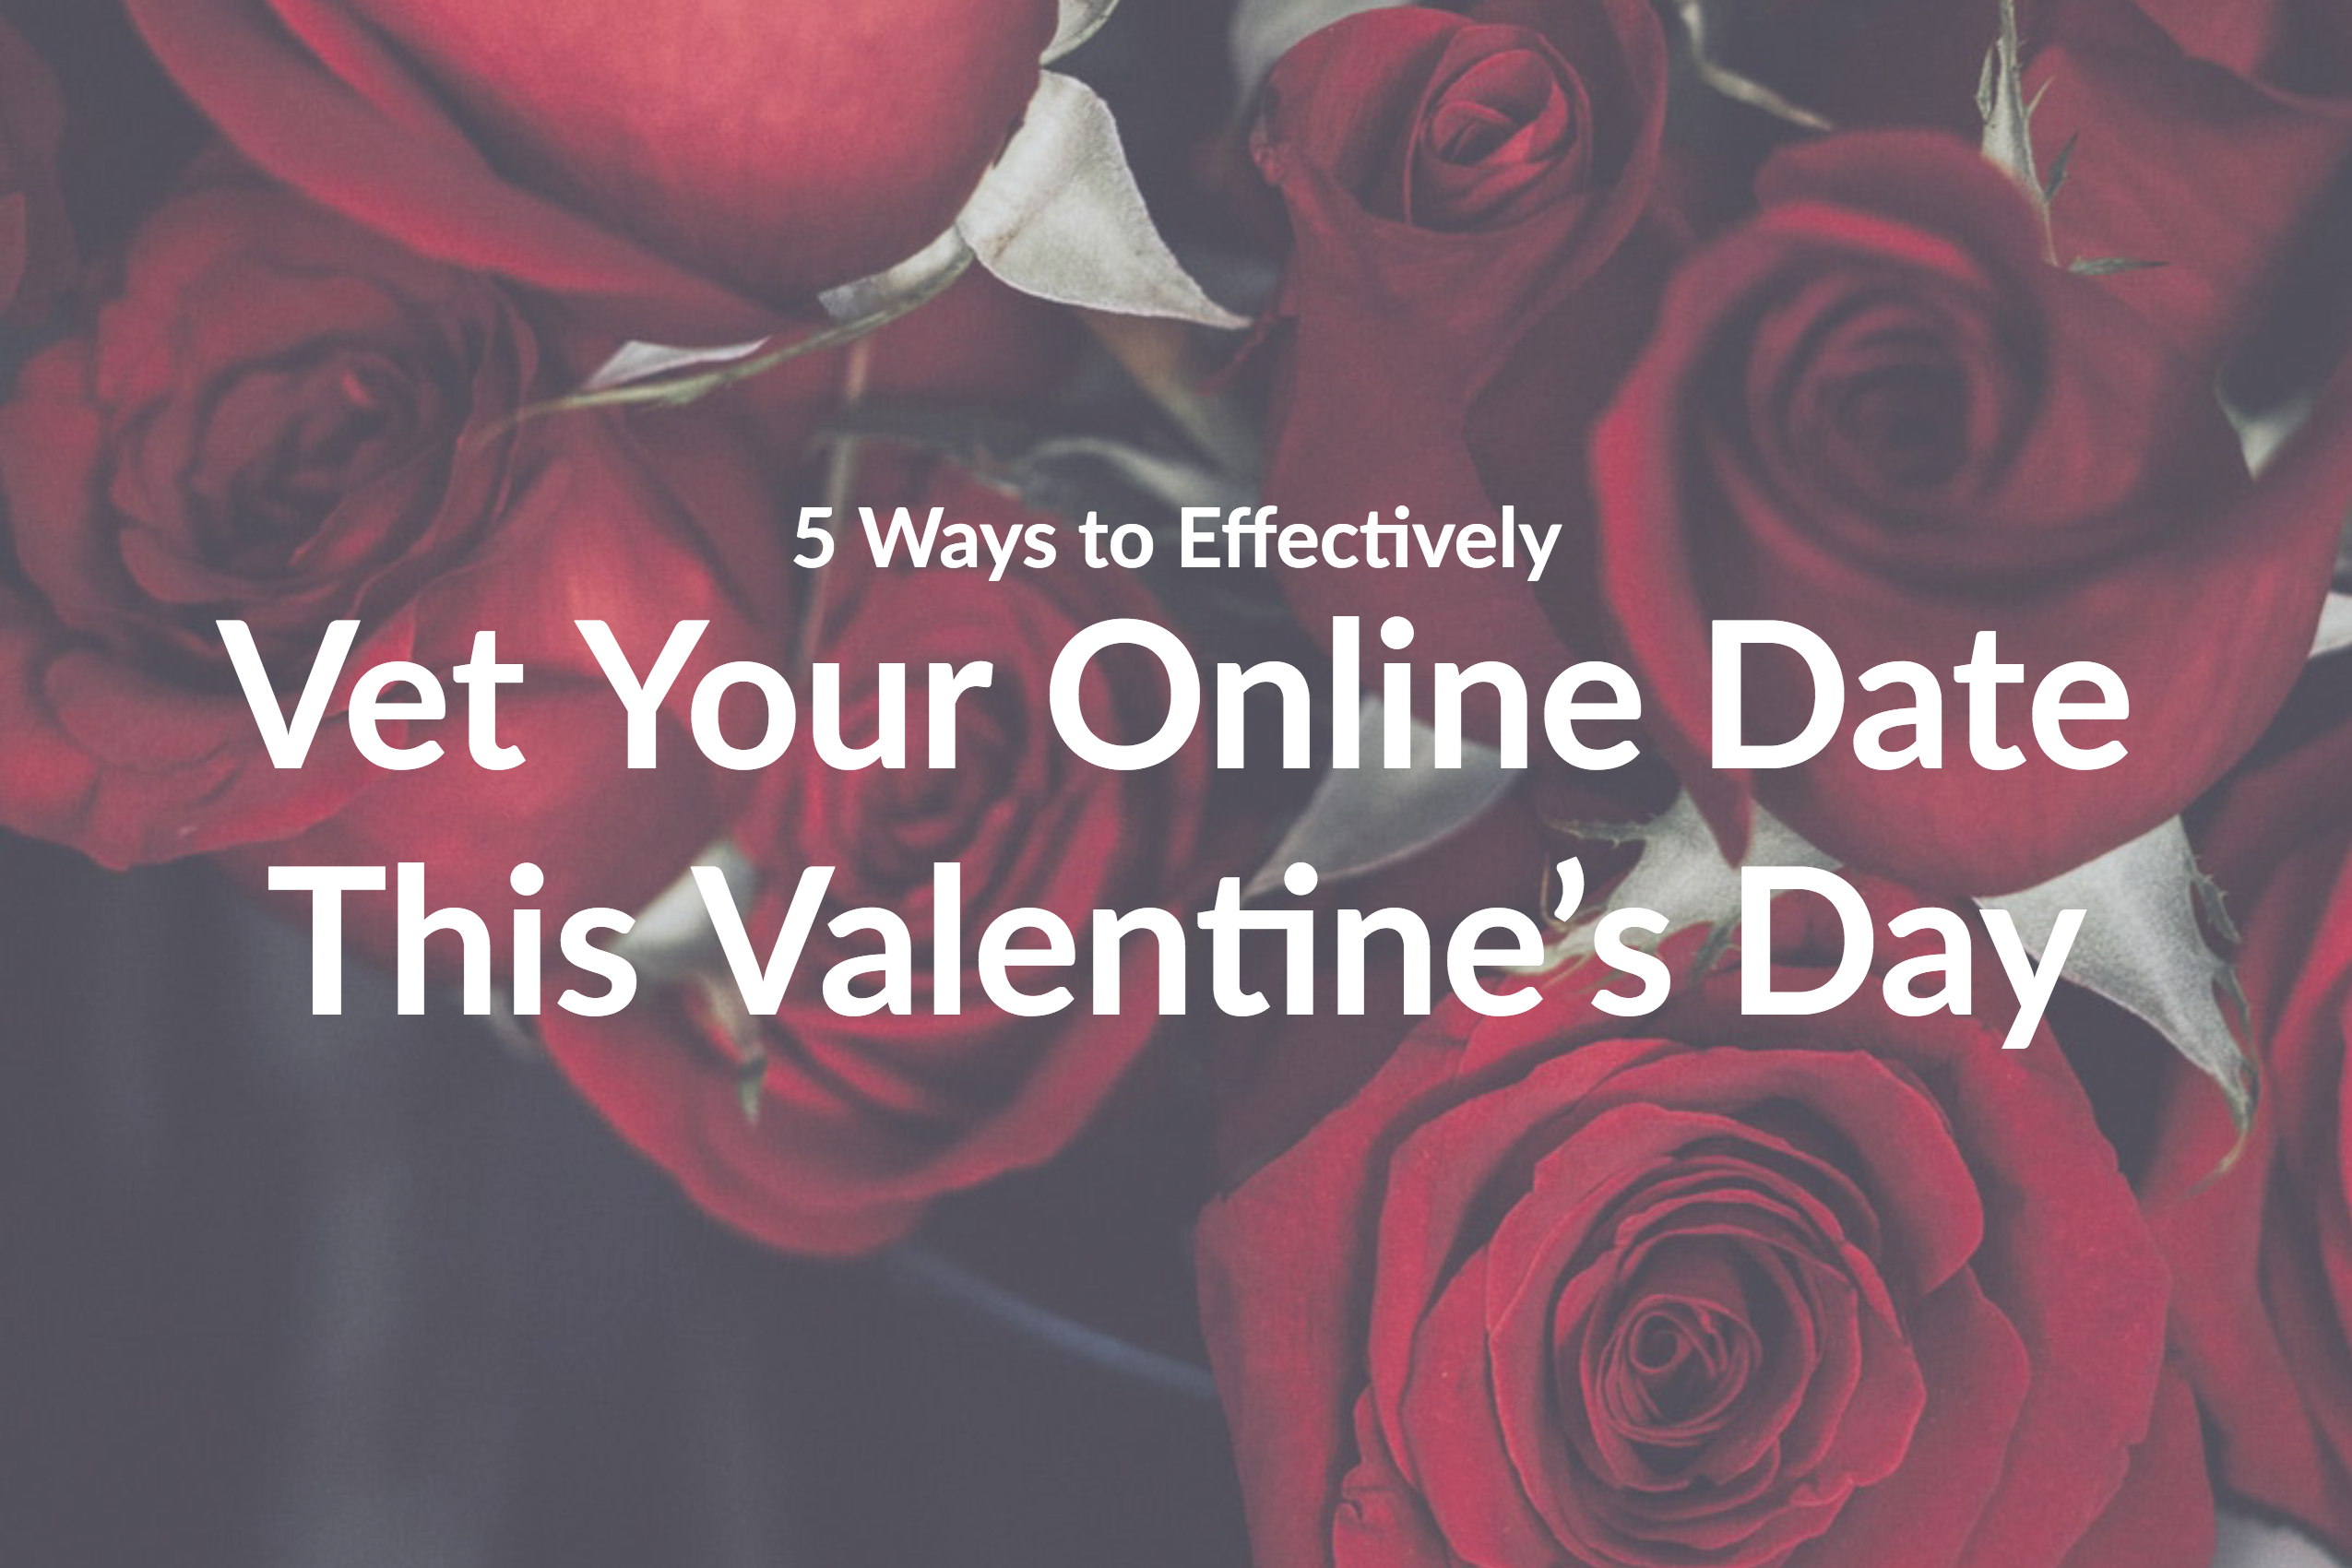 5 Ways to Effectively Vet Your Valentine's Day Date